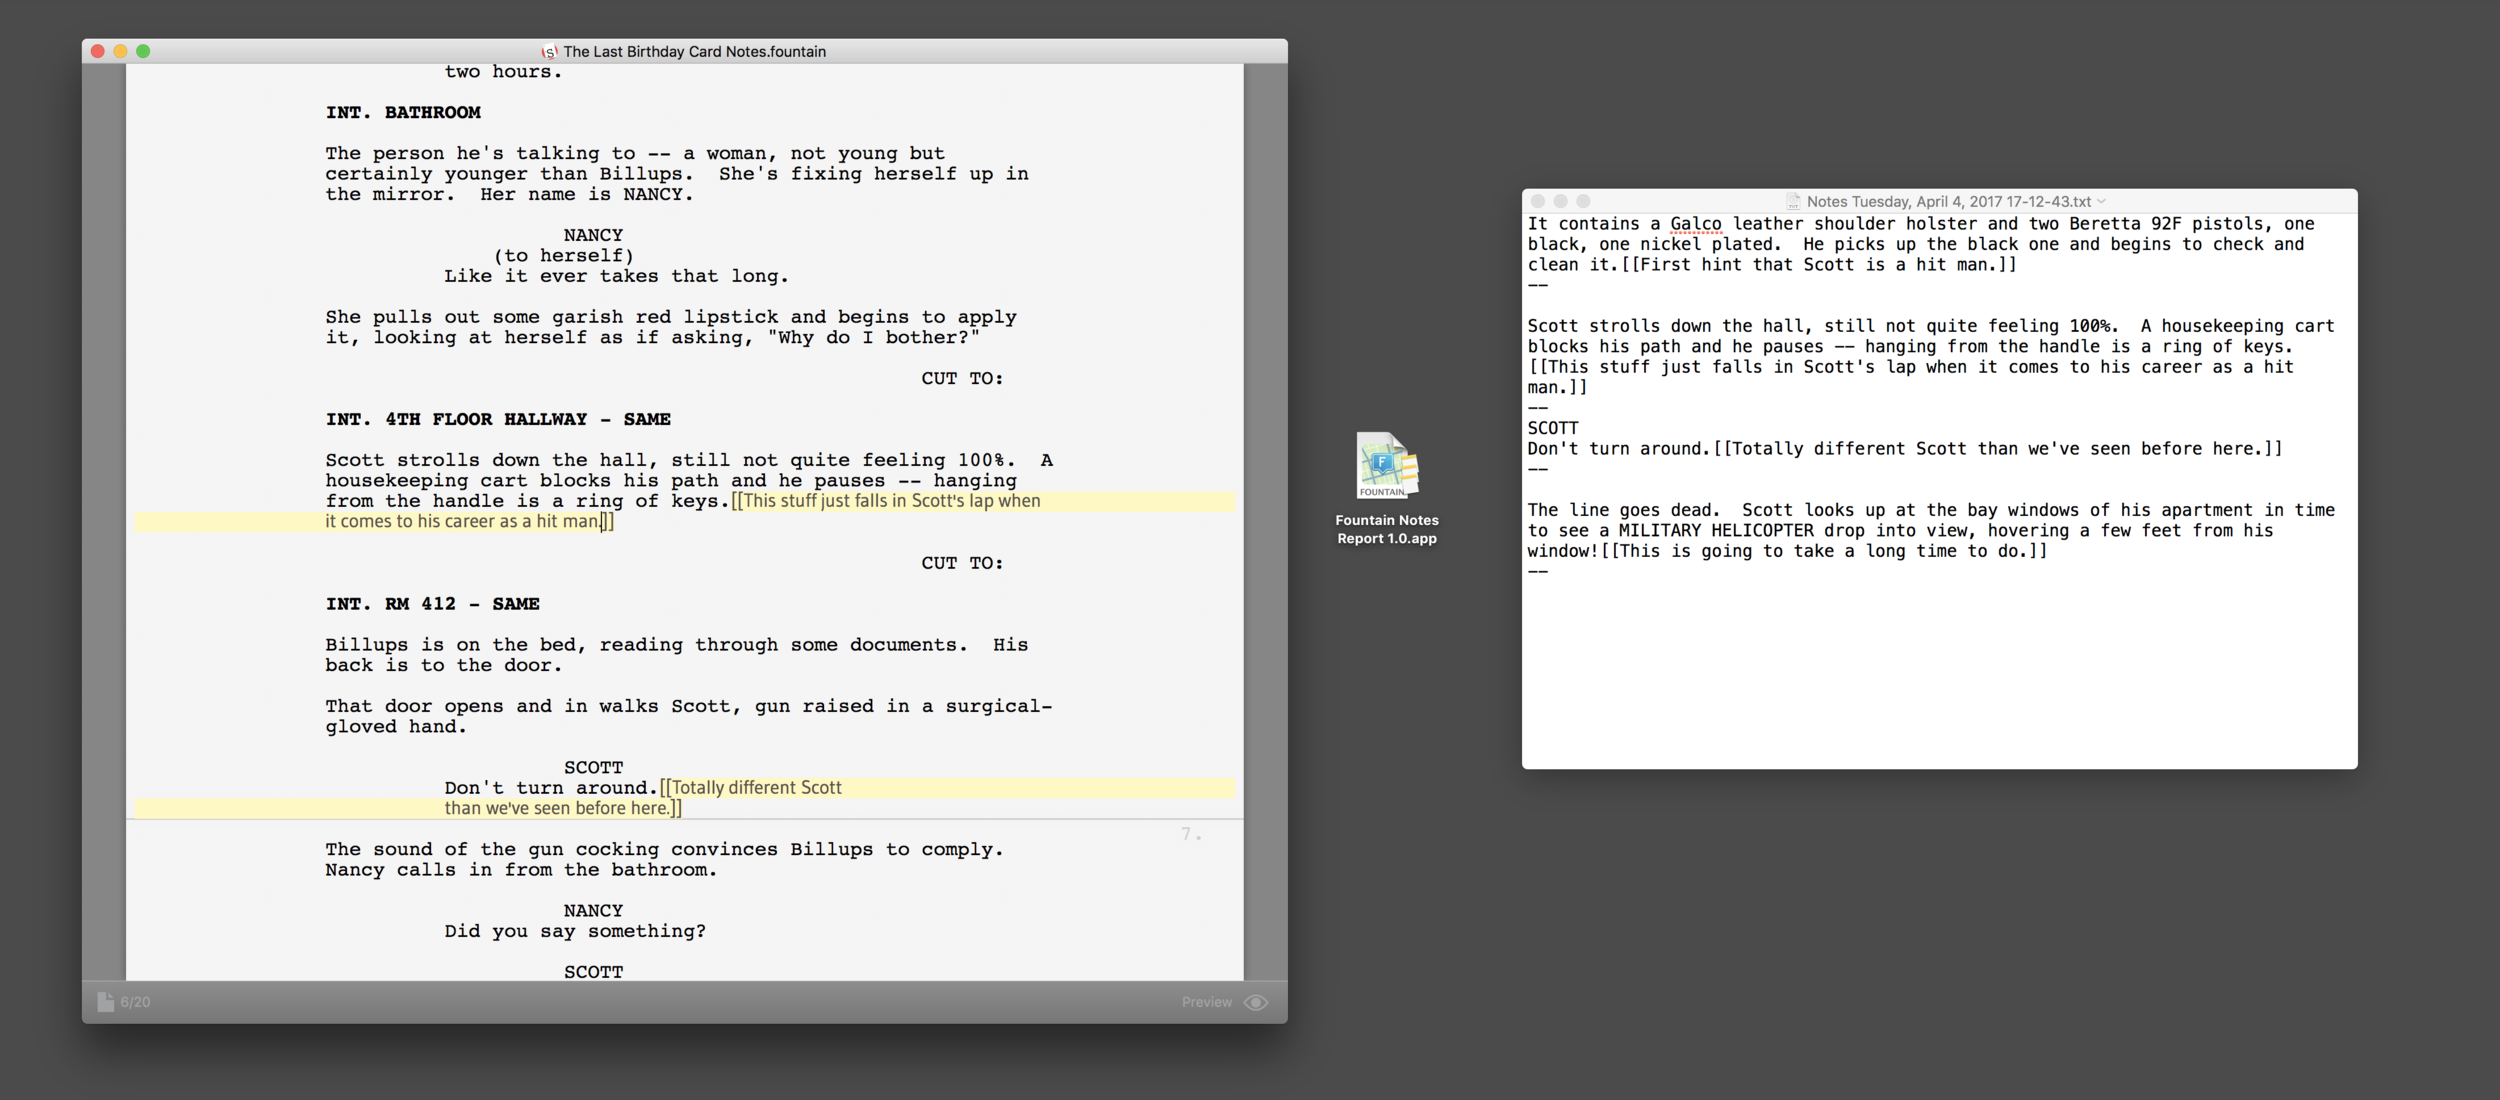 This app takes the Screenplay on the left and generates the Notes Report on the right.